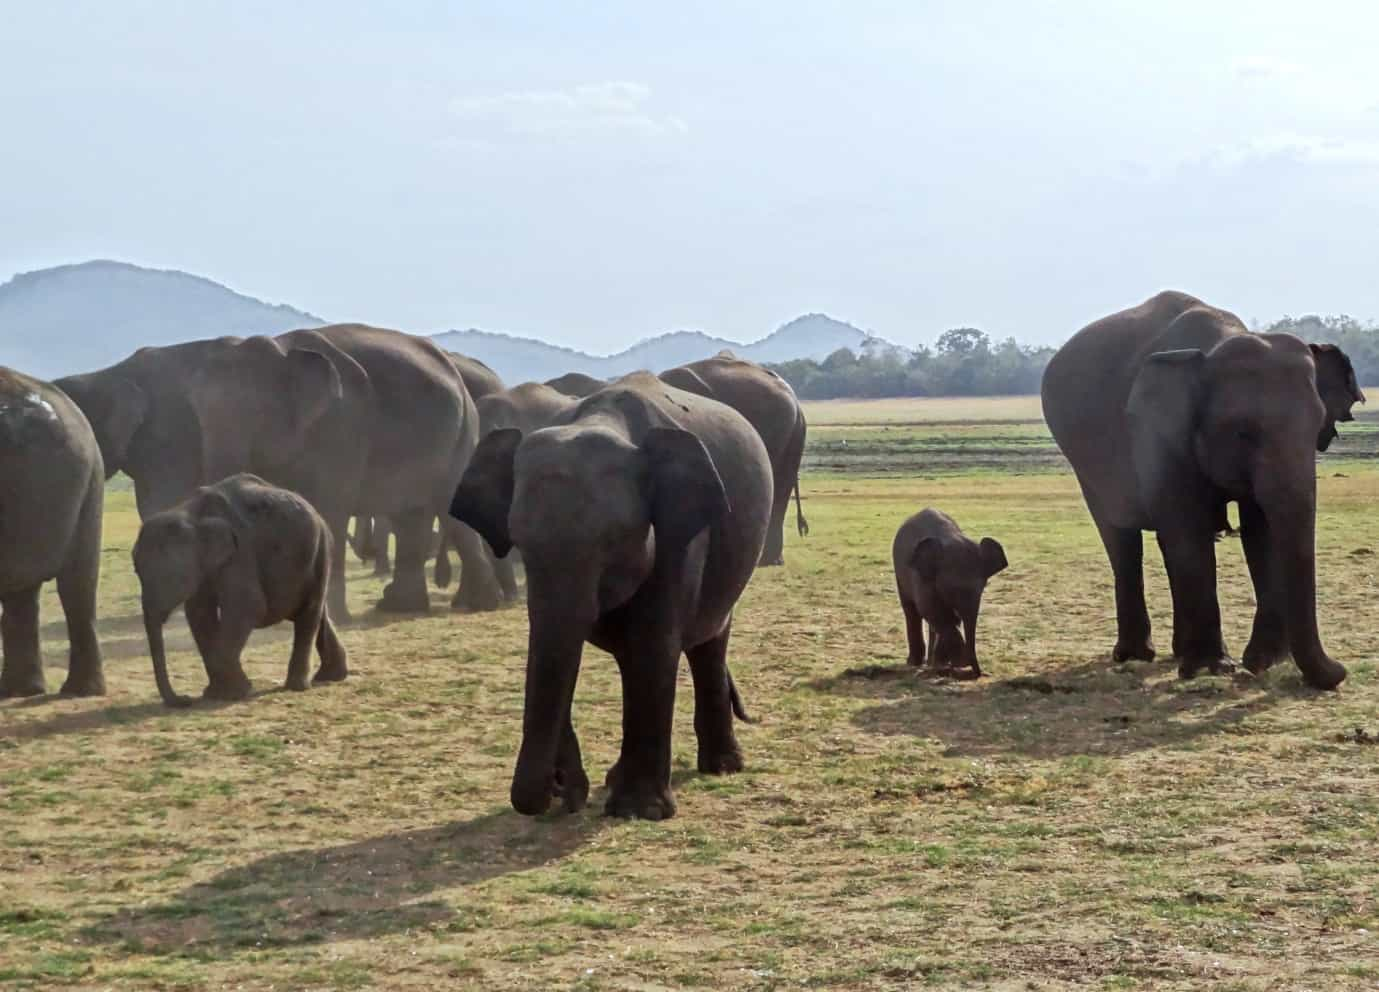 wild elephants walking on steppes in their natural habitat